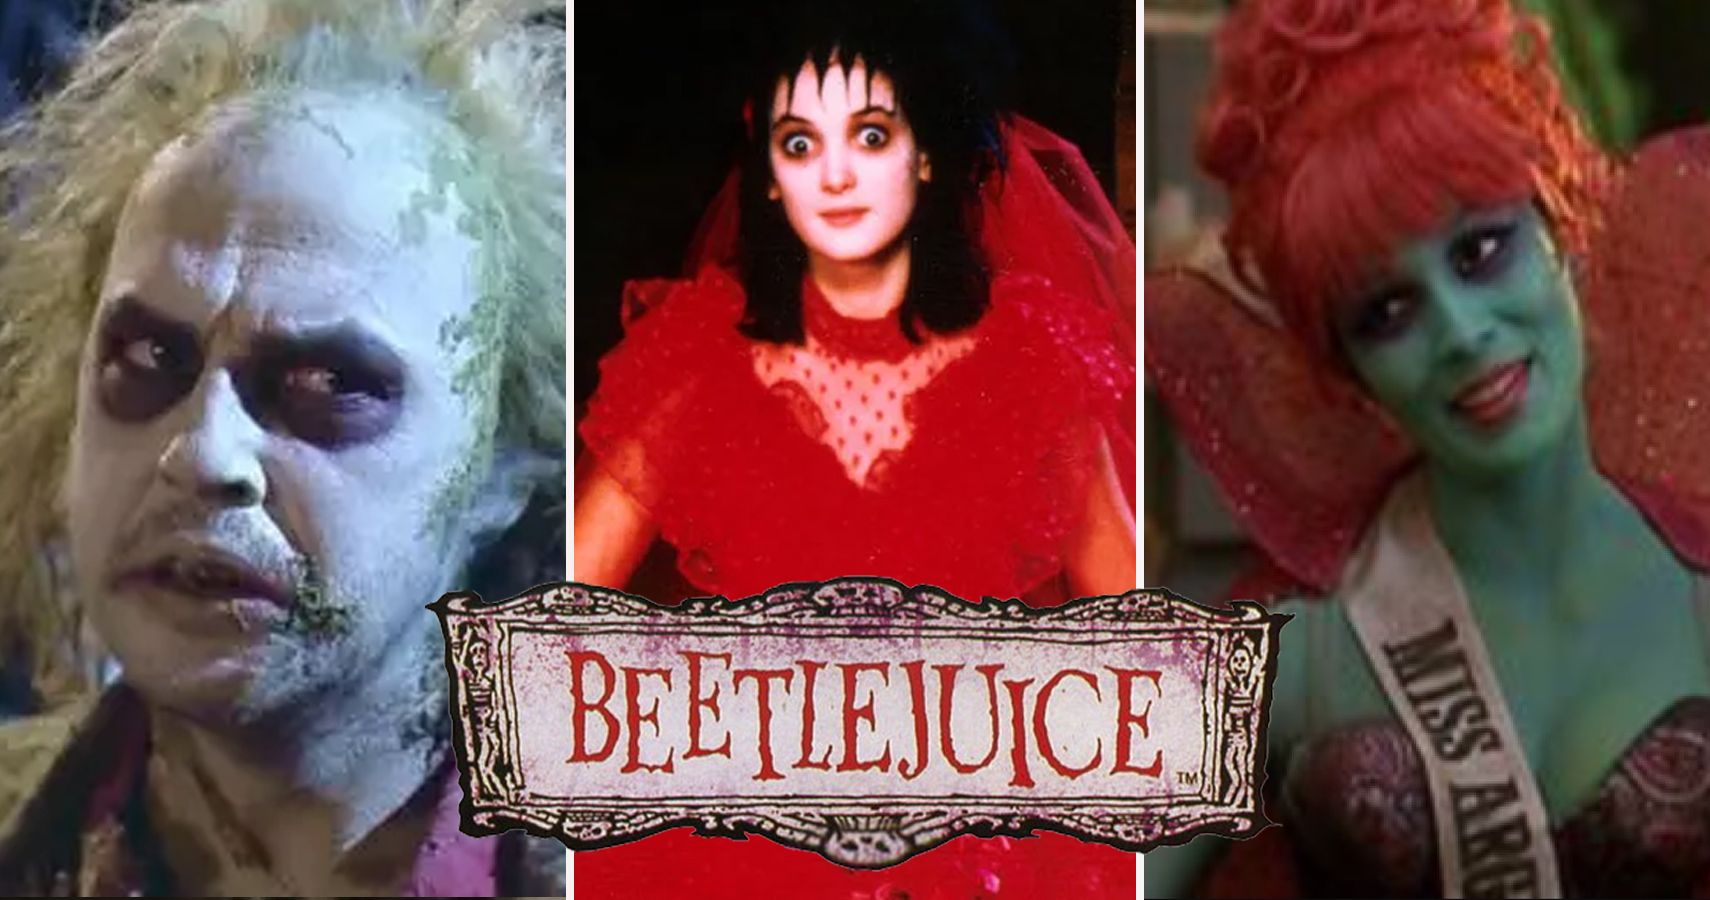 23 Things From Beetlejuice You Missed Because You Were Too Young